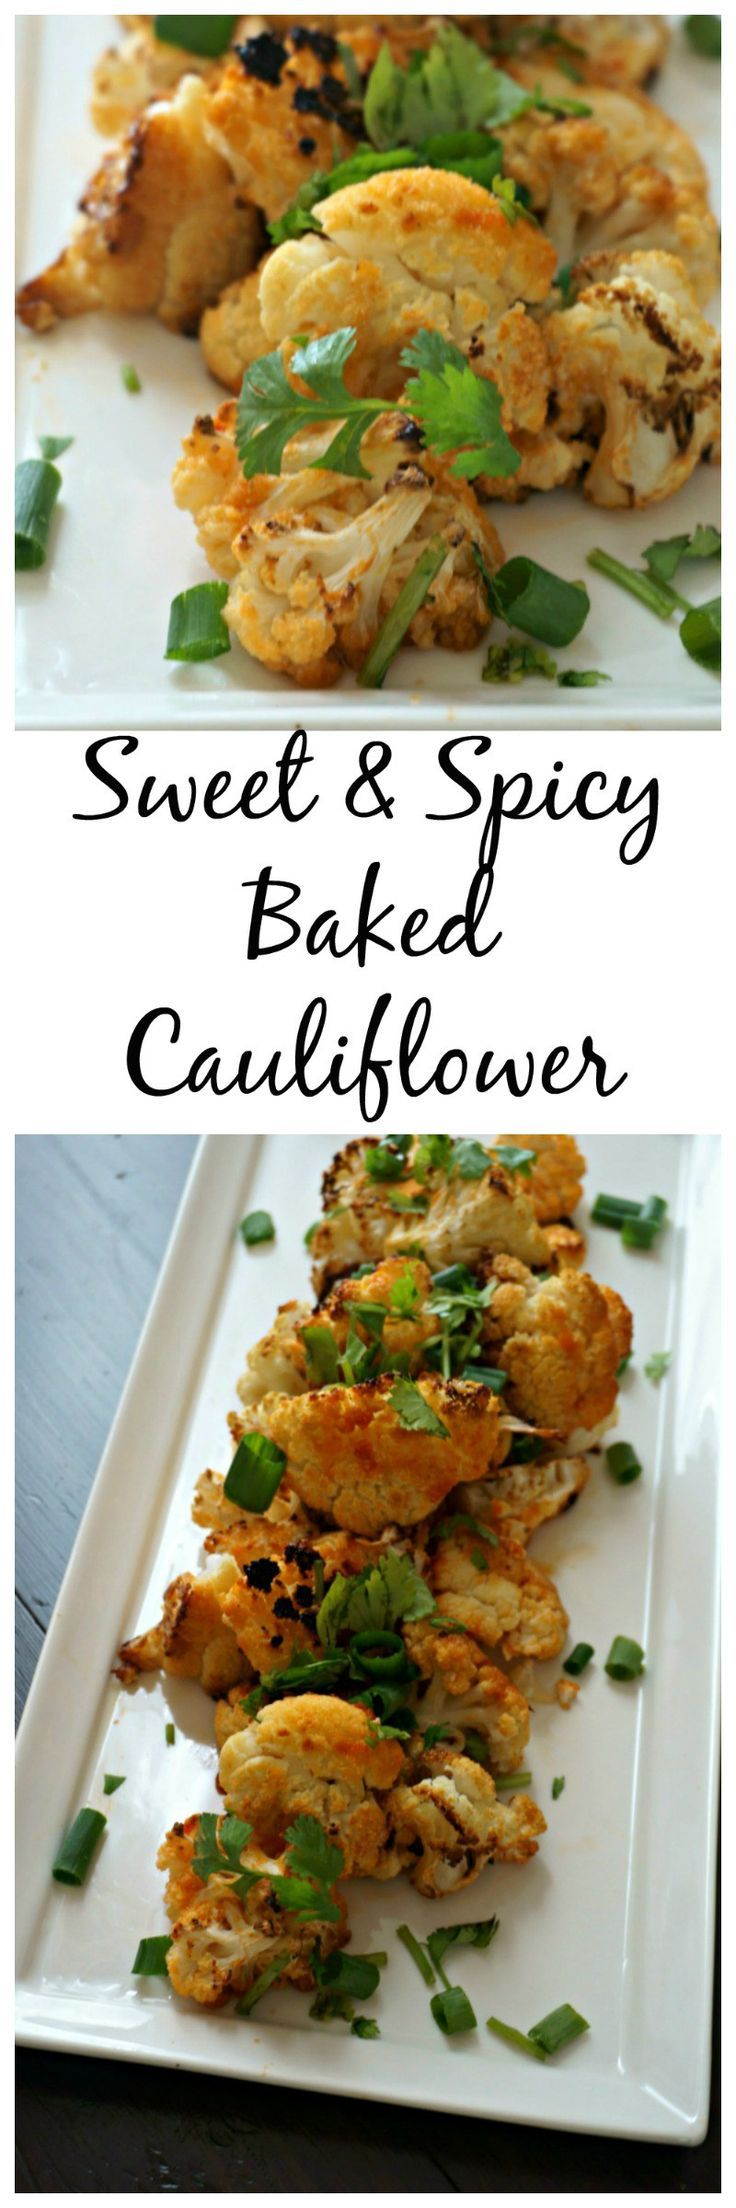 Sweet and Spicy Roasted Cauliflower  Cauliflower is marinated with a sweet and spicy marinade and then roasted until perfectly crisp and crunchy  It is finished with a sticky glaze  totally addictive and perfectly poppable